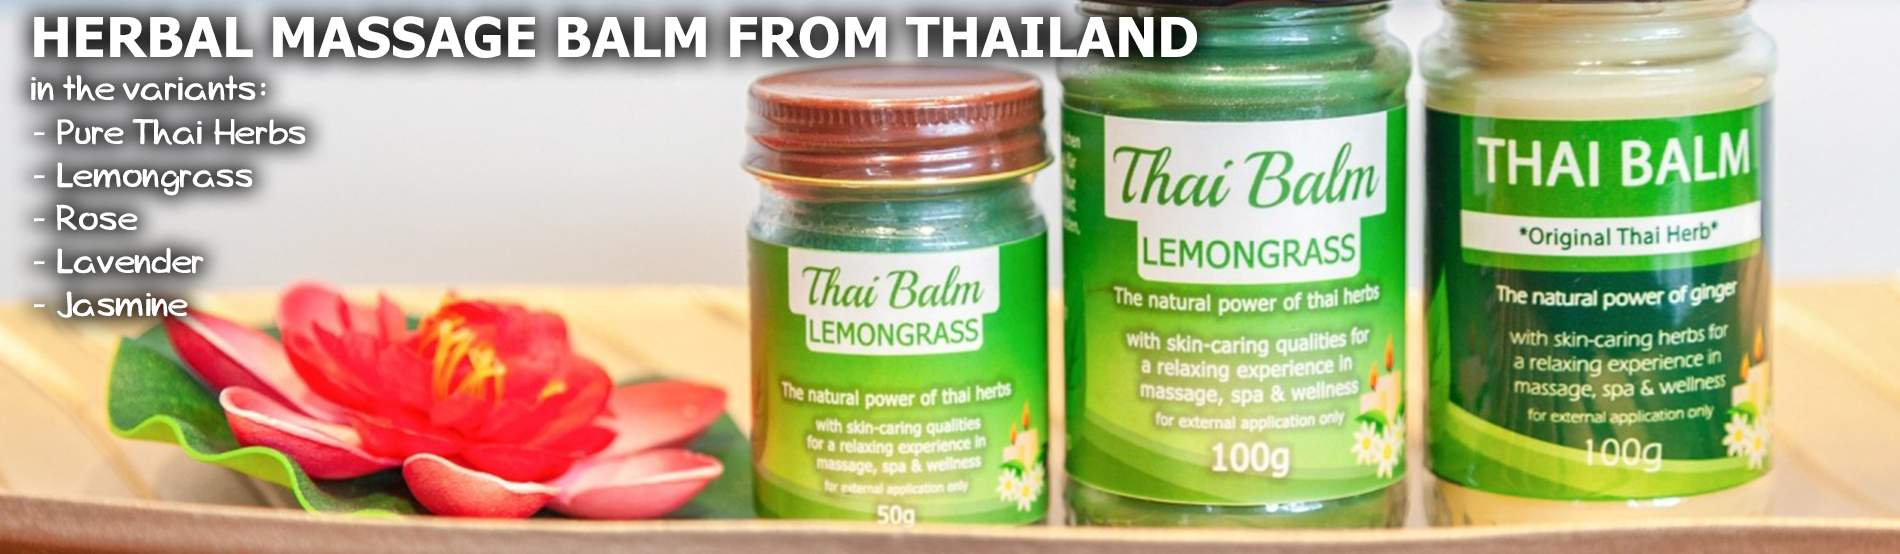 Herbal massage thai balm